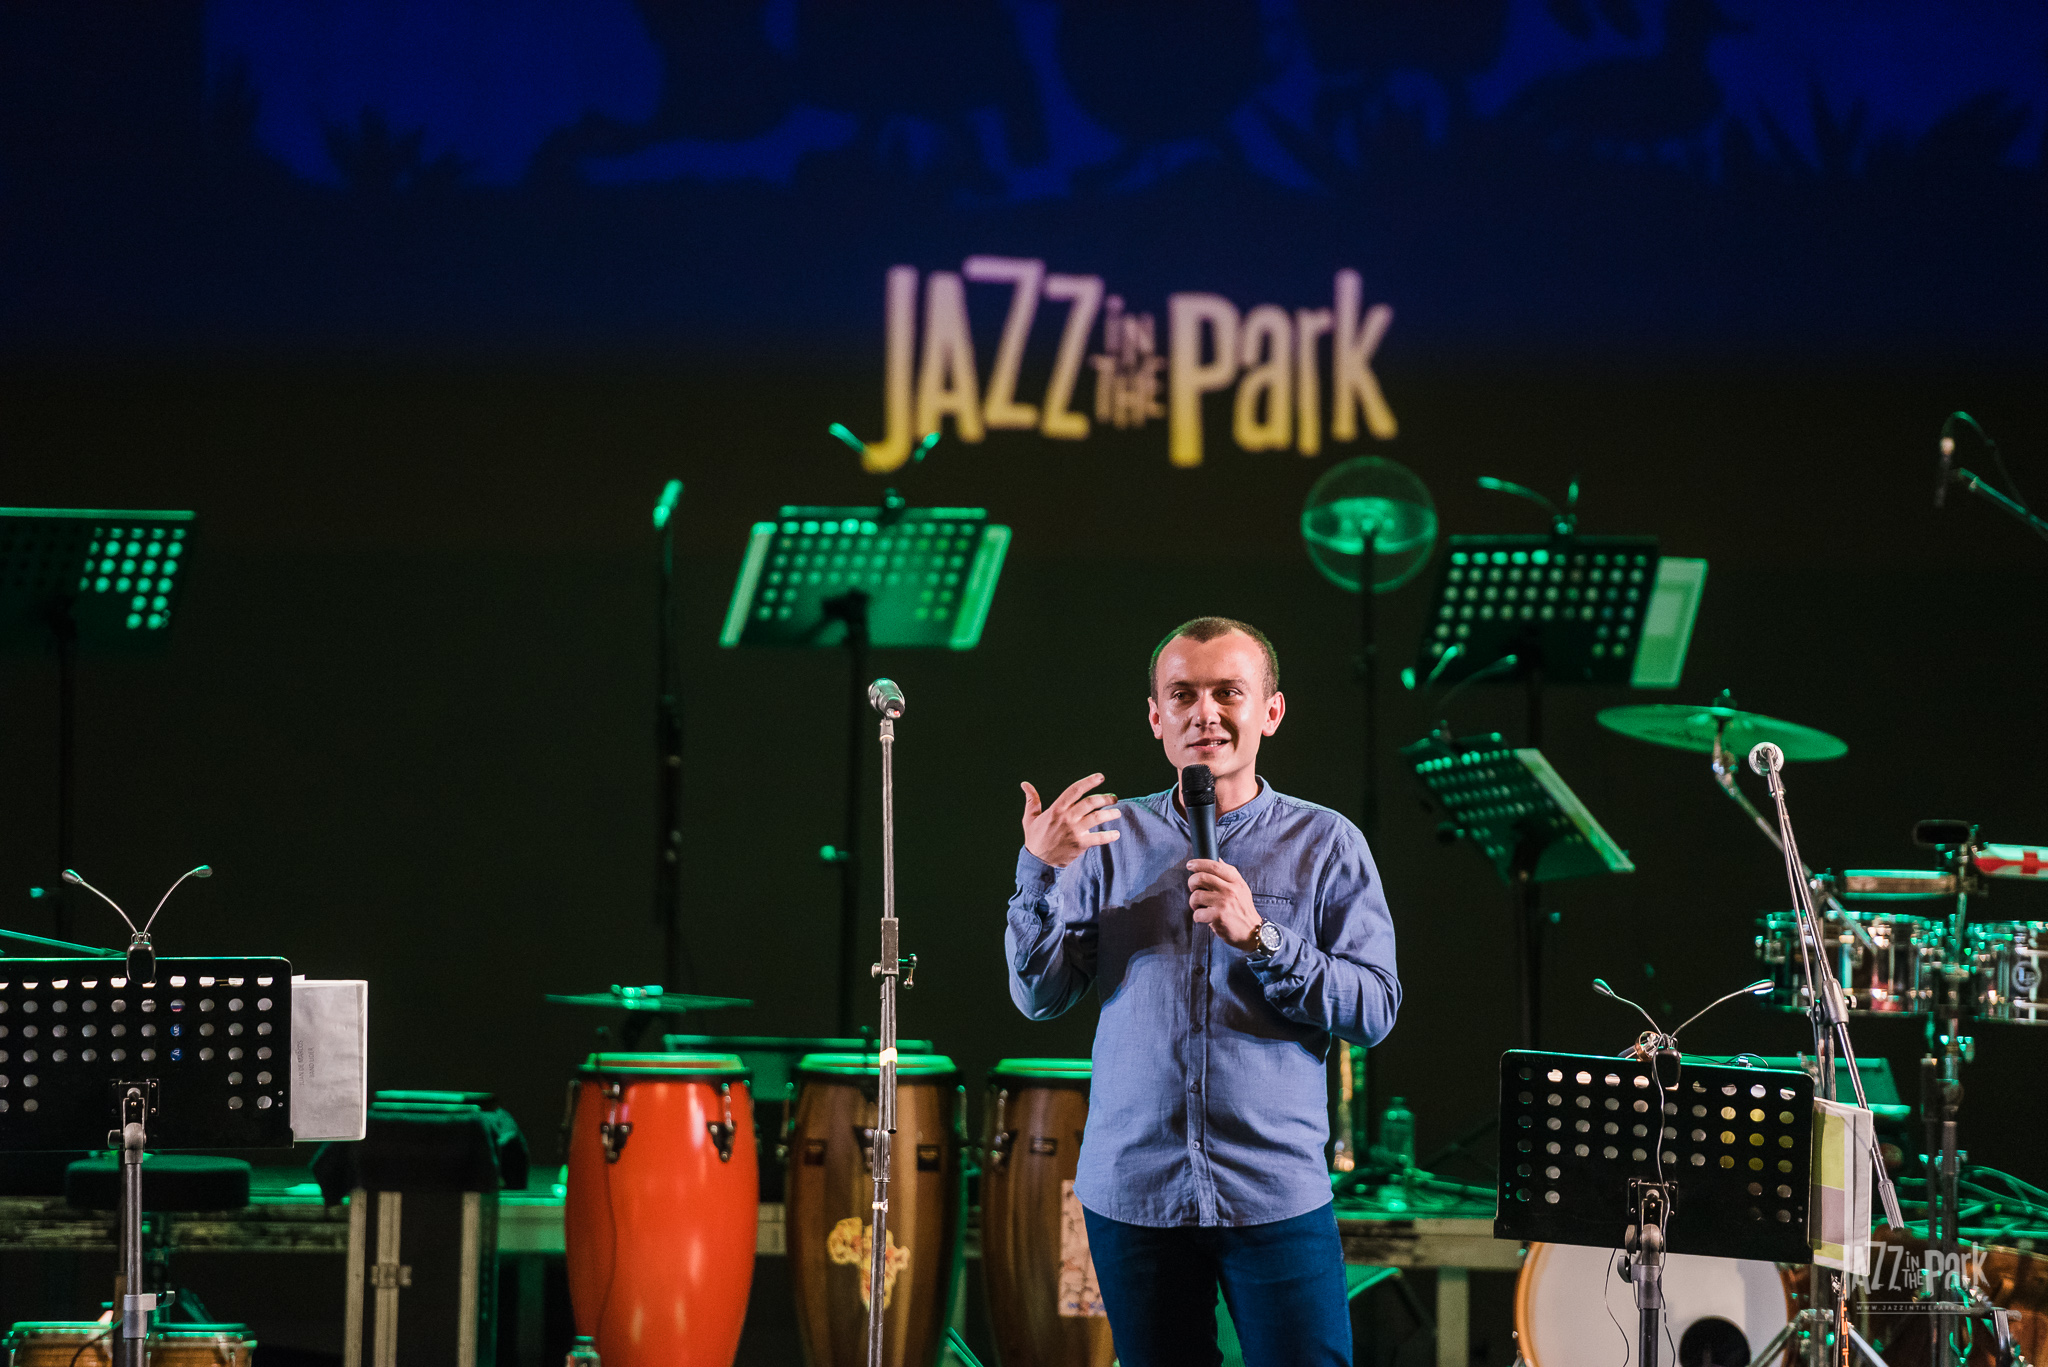 Începe Jazz in the Park